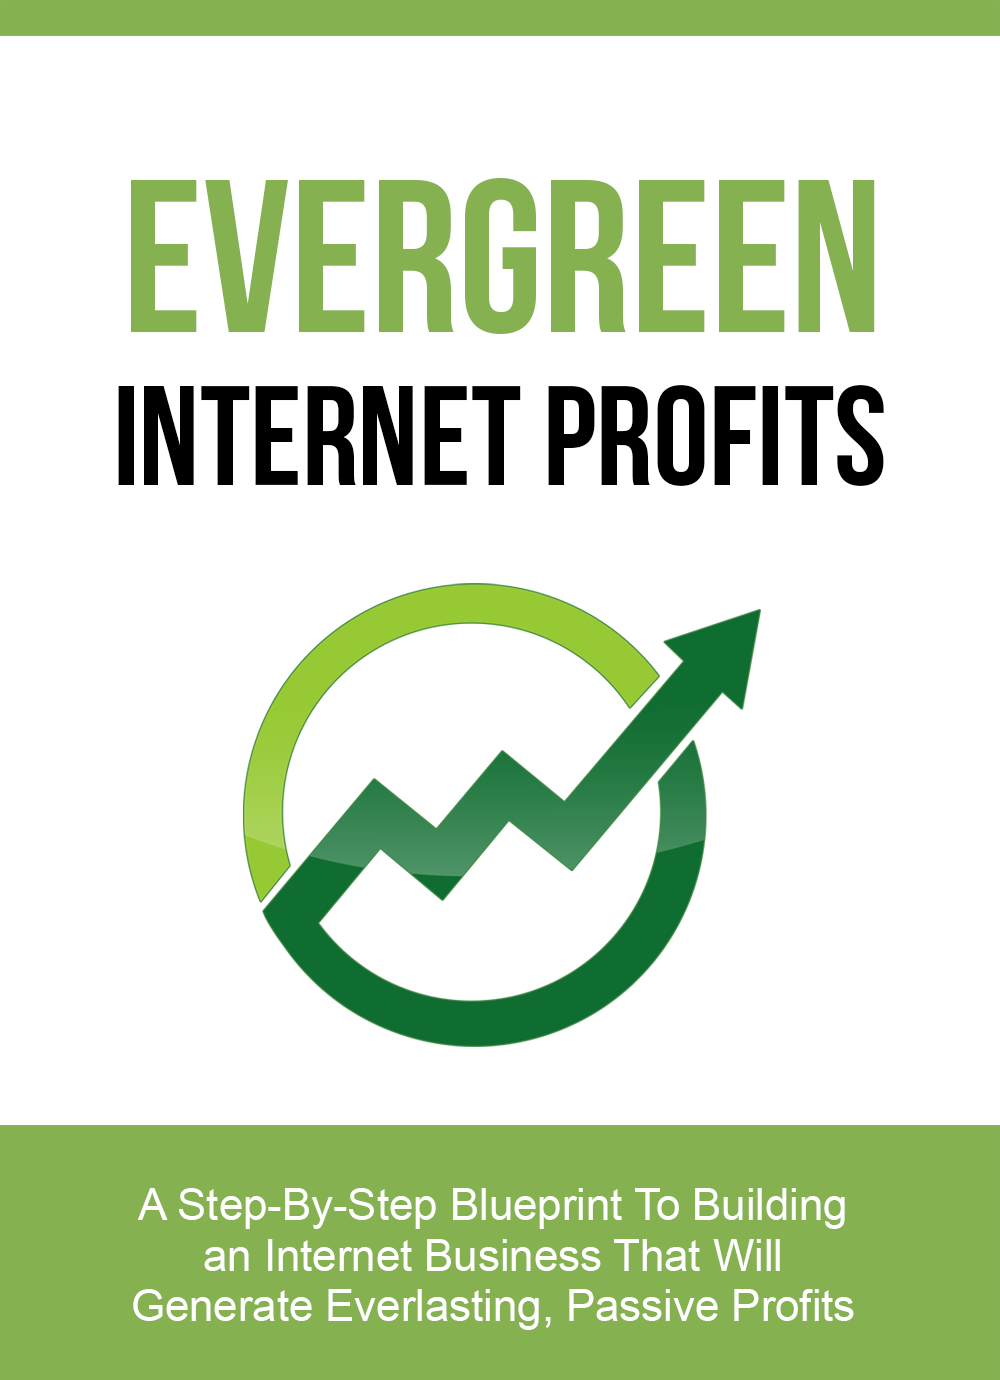 Evergreen Internet Profits (A Step-By-Step Blueprint To Building An Internet Business That Will Generate Everlasting, Passive Profits) Ebook's Ebook Image